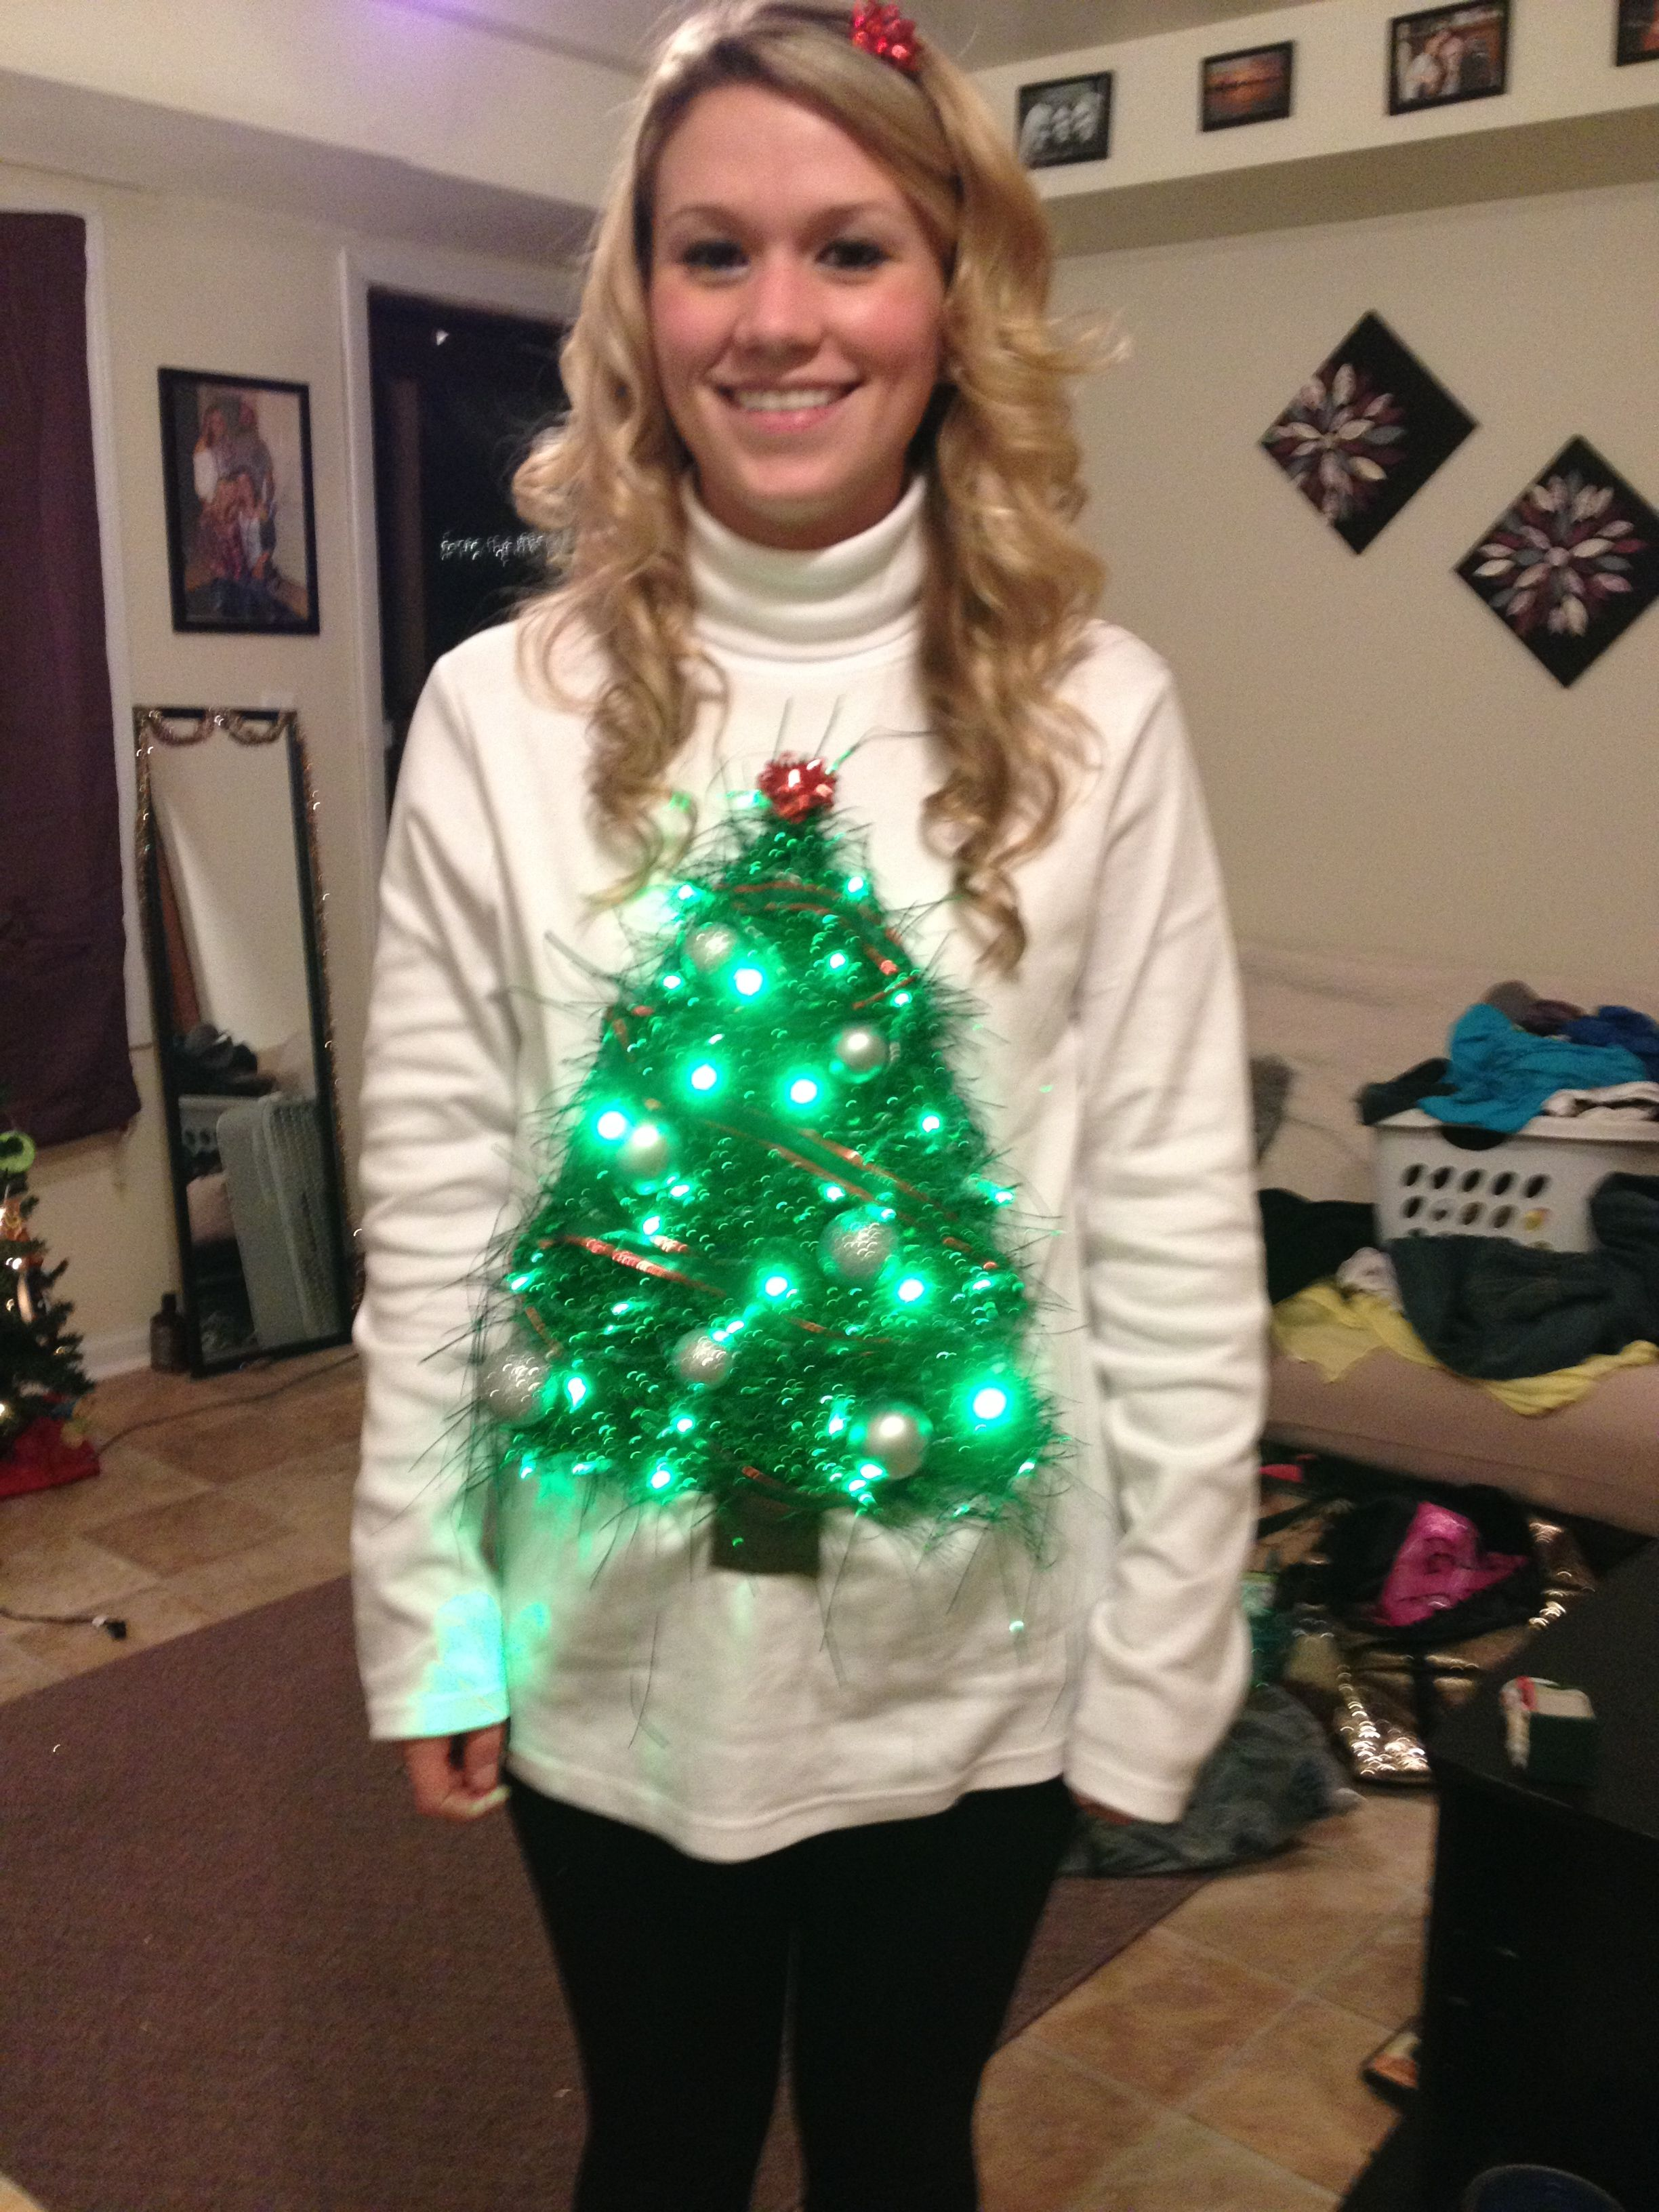 ugly mom paper decorations of review in ballin my used that thought and fun like christmas it do wear s to the with decor img balling be sweaters would sweater vocabulary